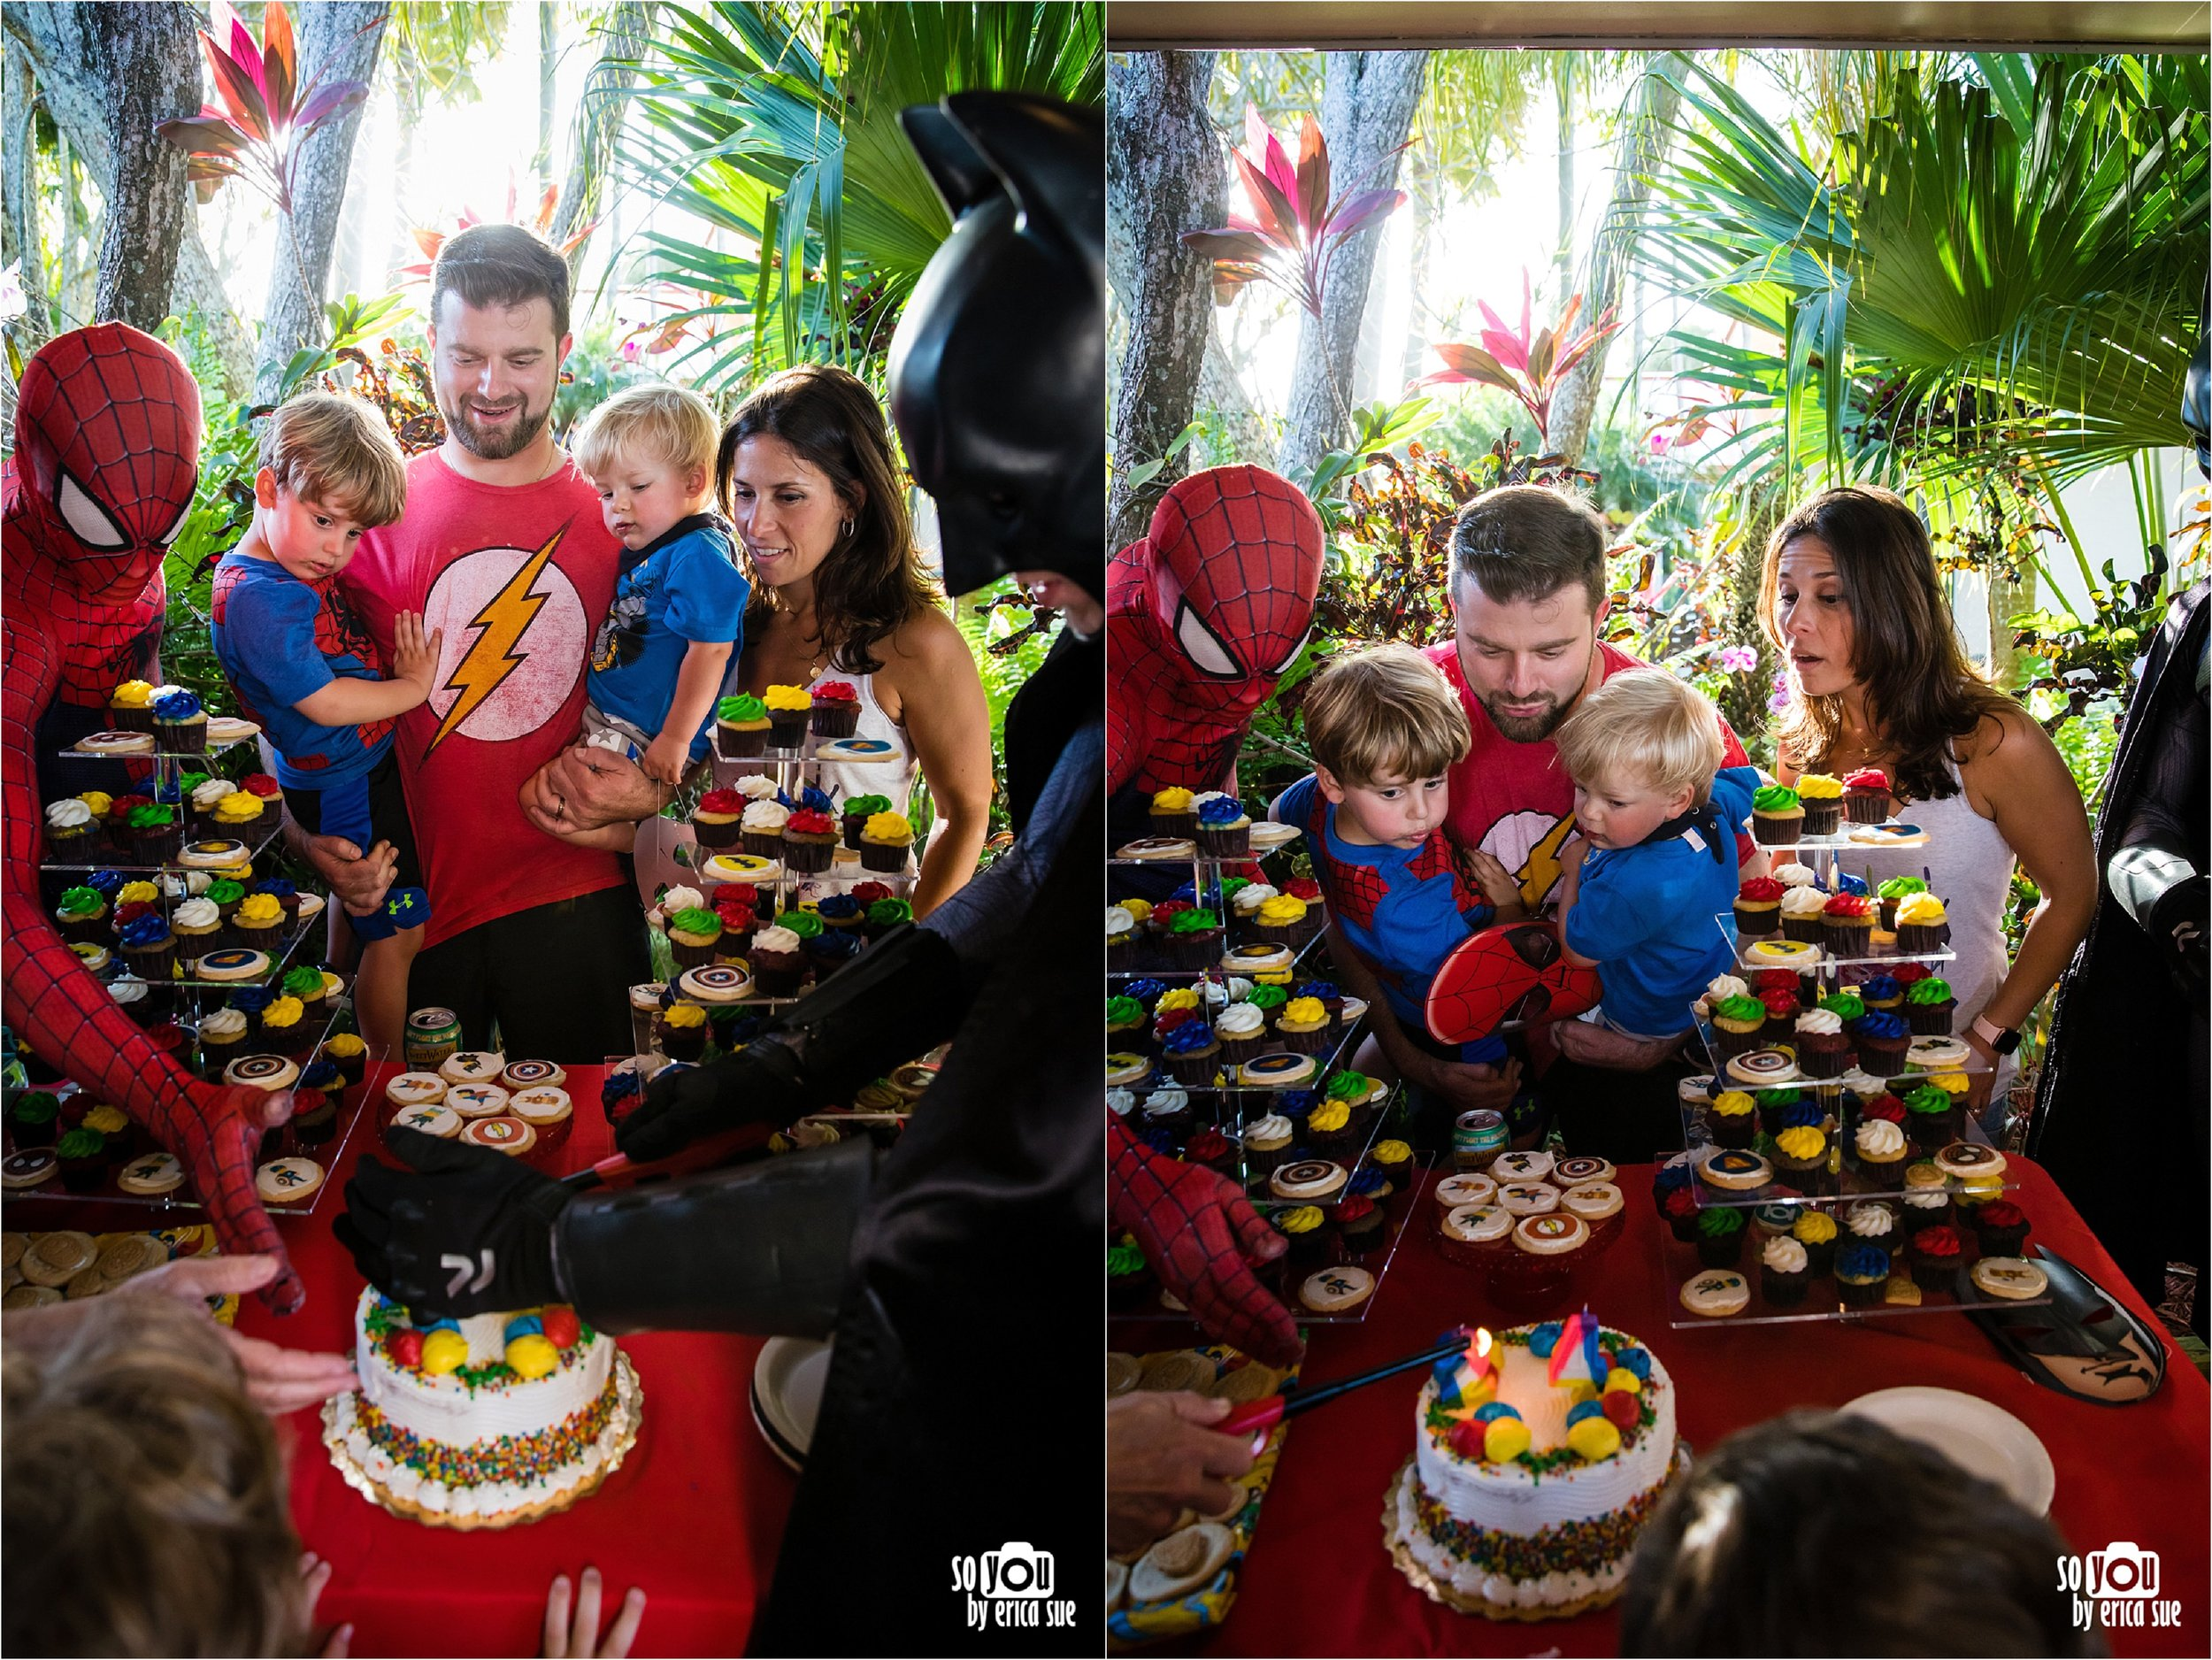 so-you-by-erica-sue-miami-birthday-party-event-photographer-8766 (2).jpg